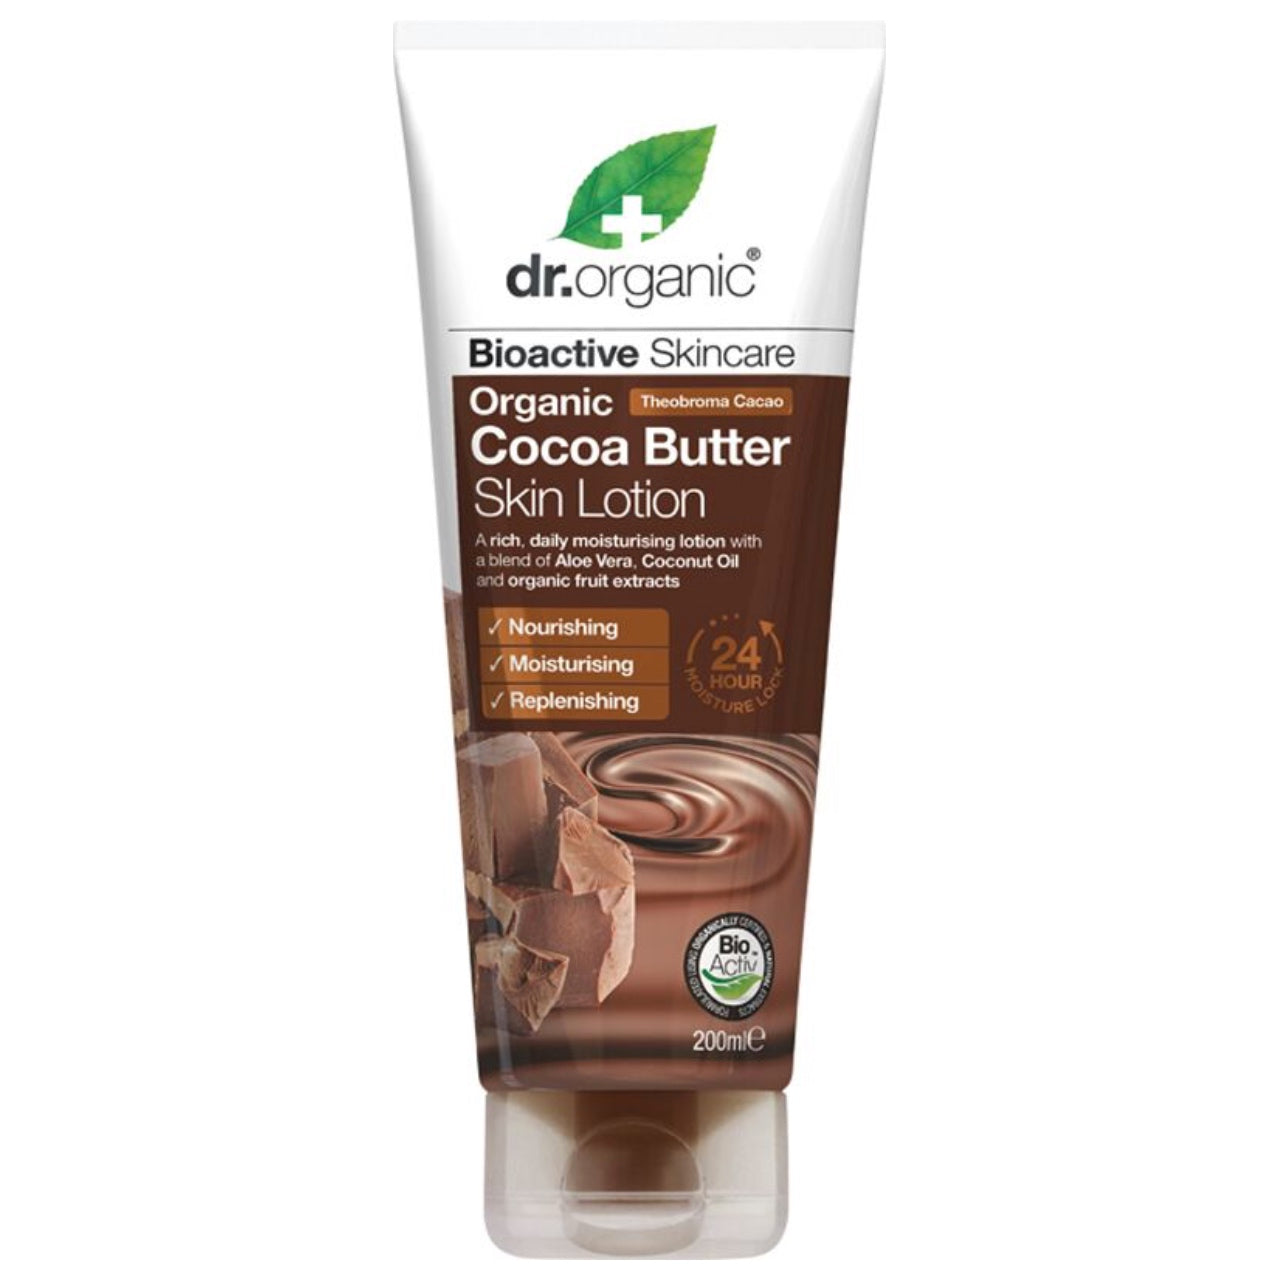 Dr Organic Creamy Body Lotion -Organic Cocoa Butter